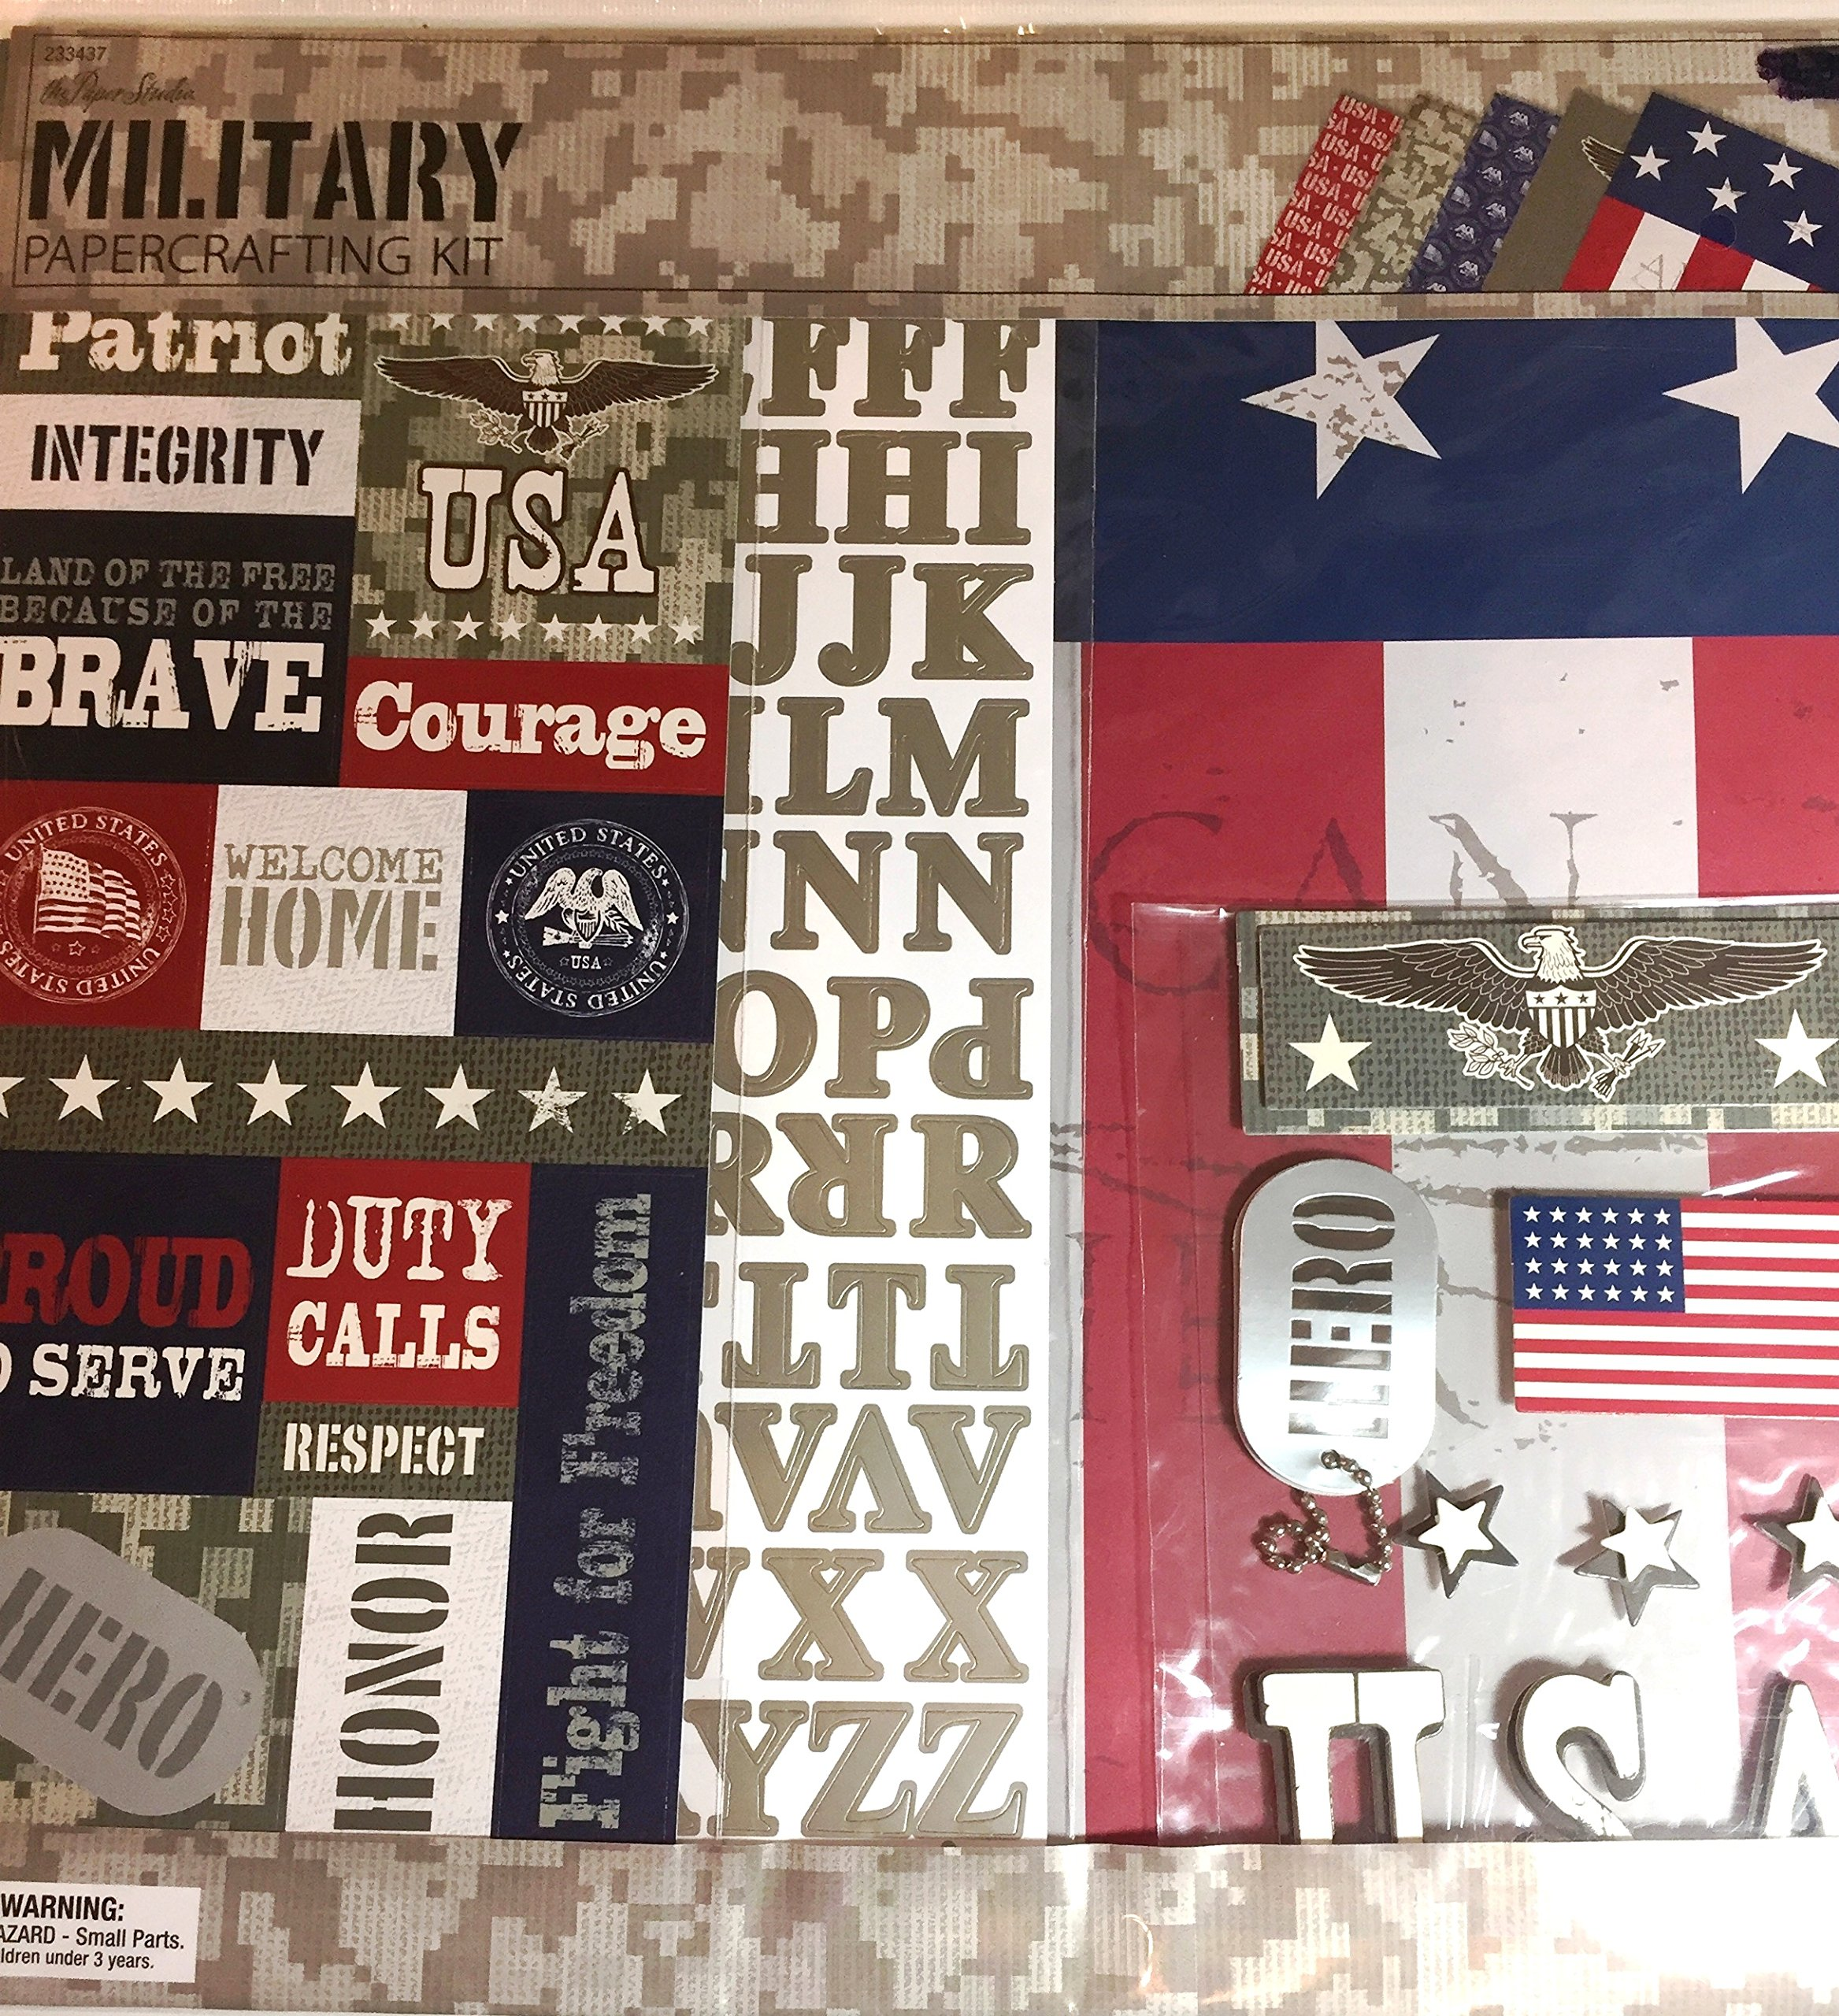 Military 12x12 Scrapbooking Page Kit, 13 pcs. Hero, USA, Brave, Courage, Duty Calls